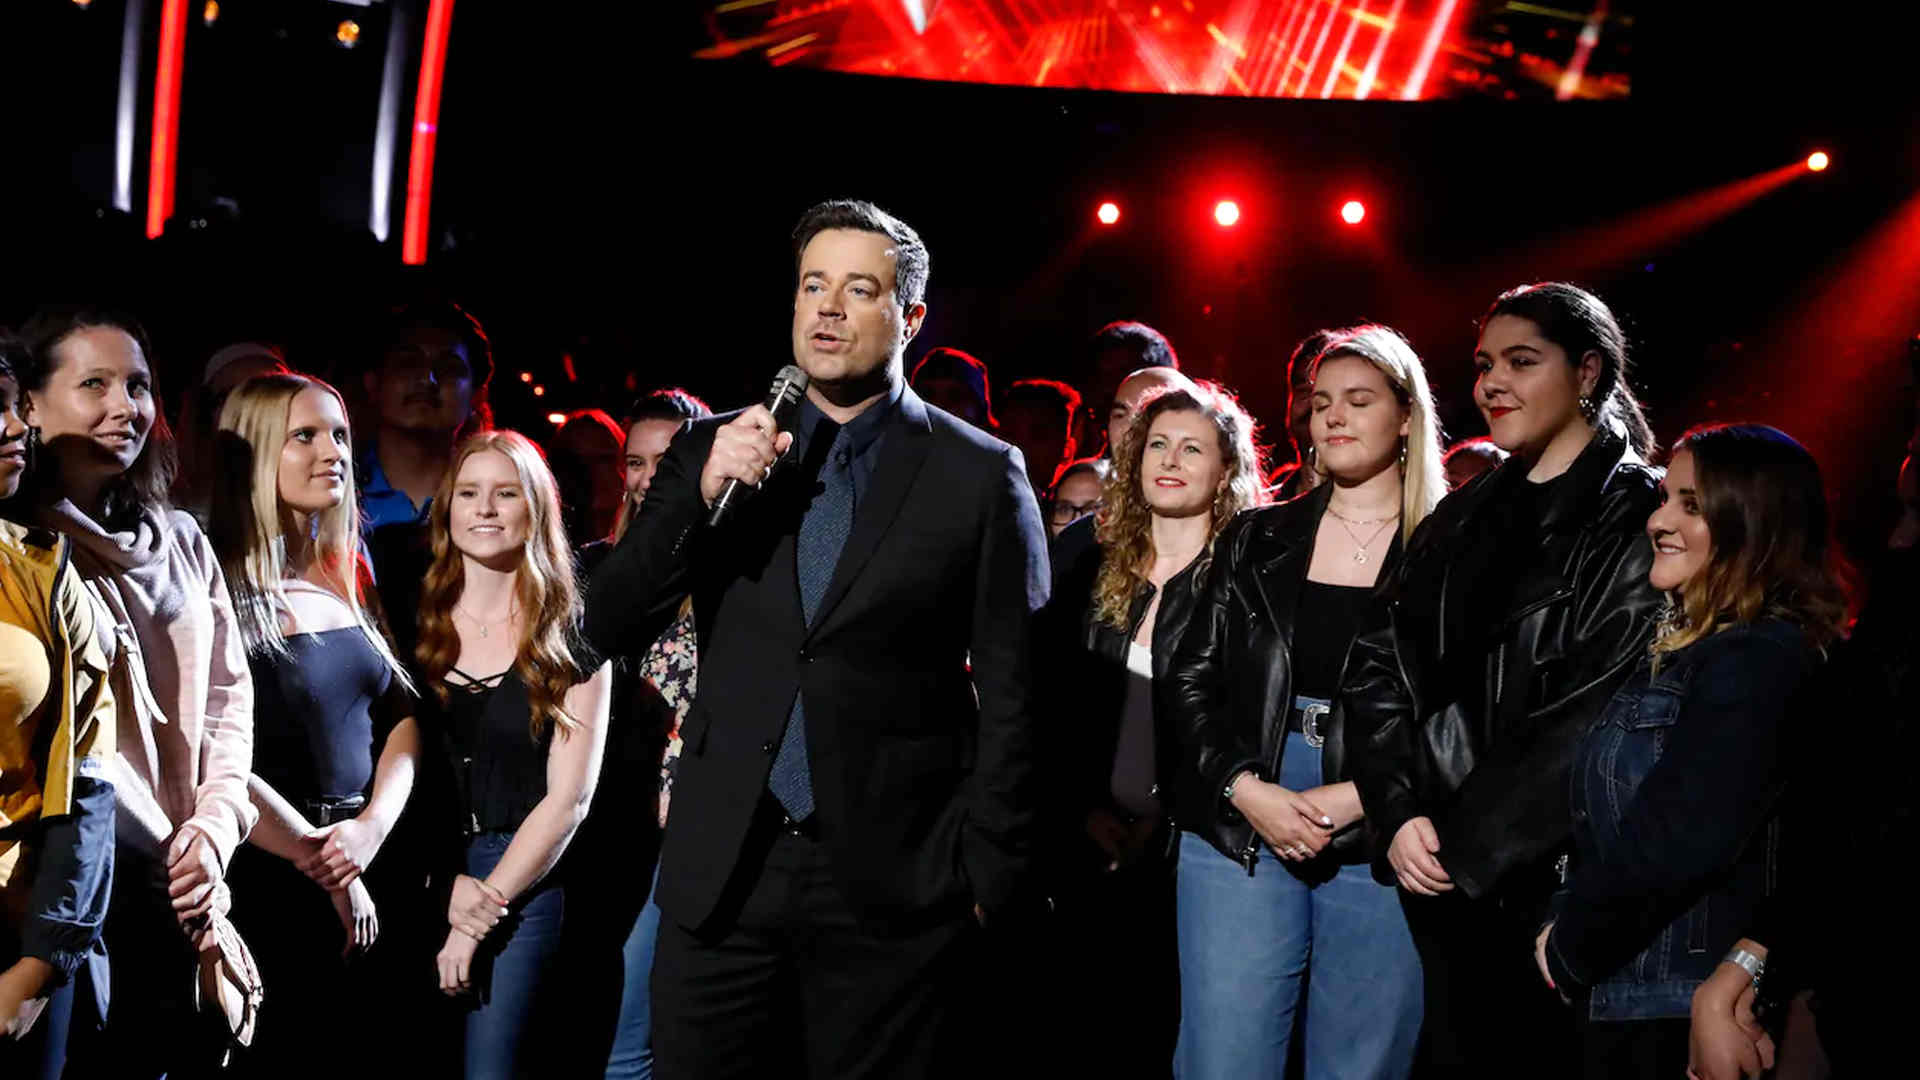 Watch the Voice 2019 Instant Save 7 May 2019 Full Episode Online Who Won the Voice 2019 Tonight Top 13 Result